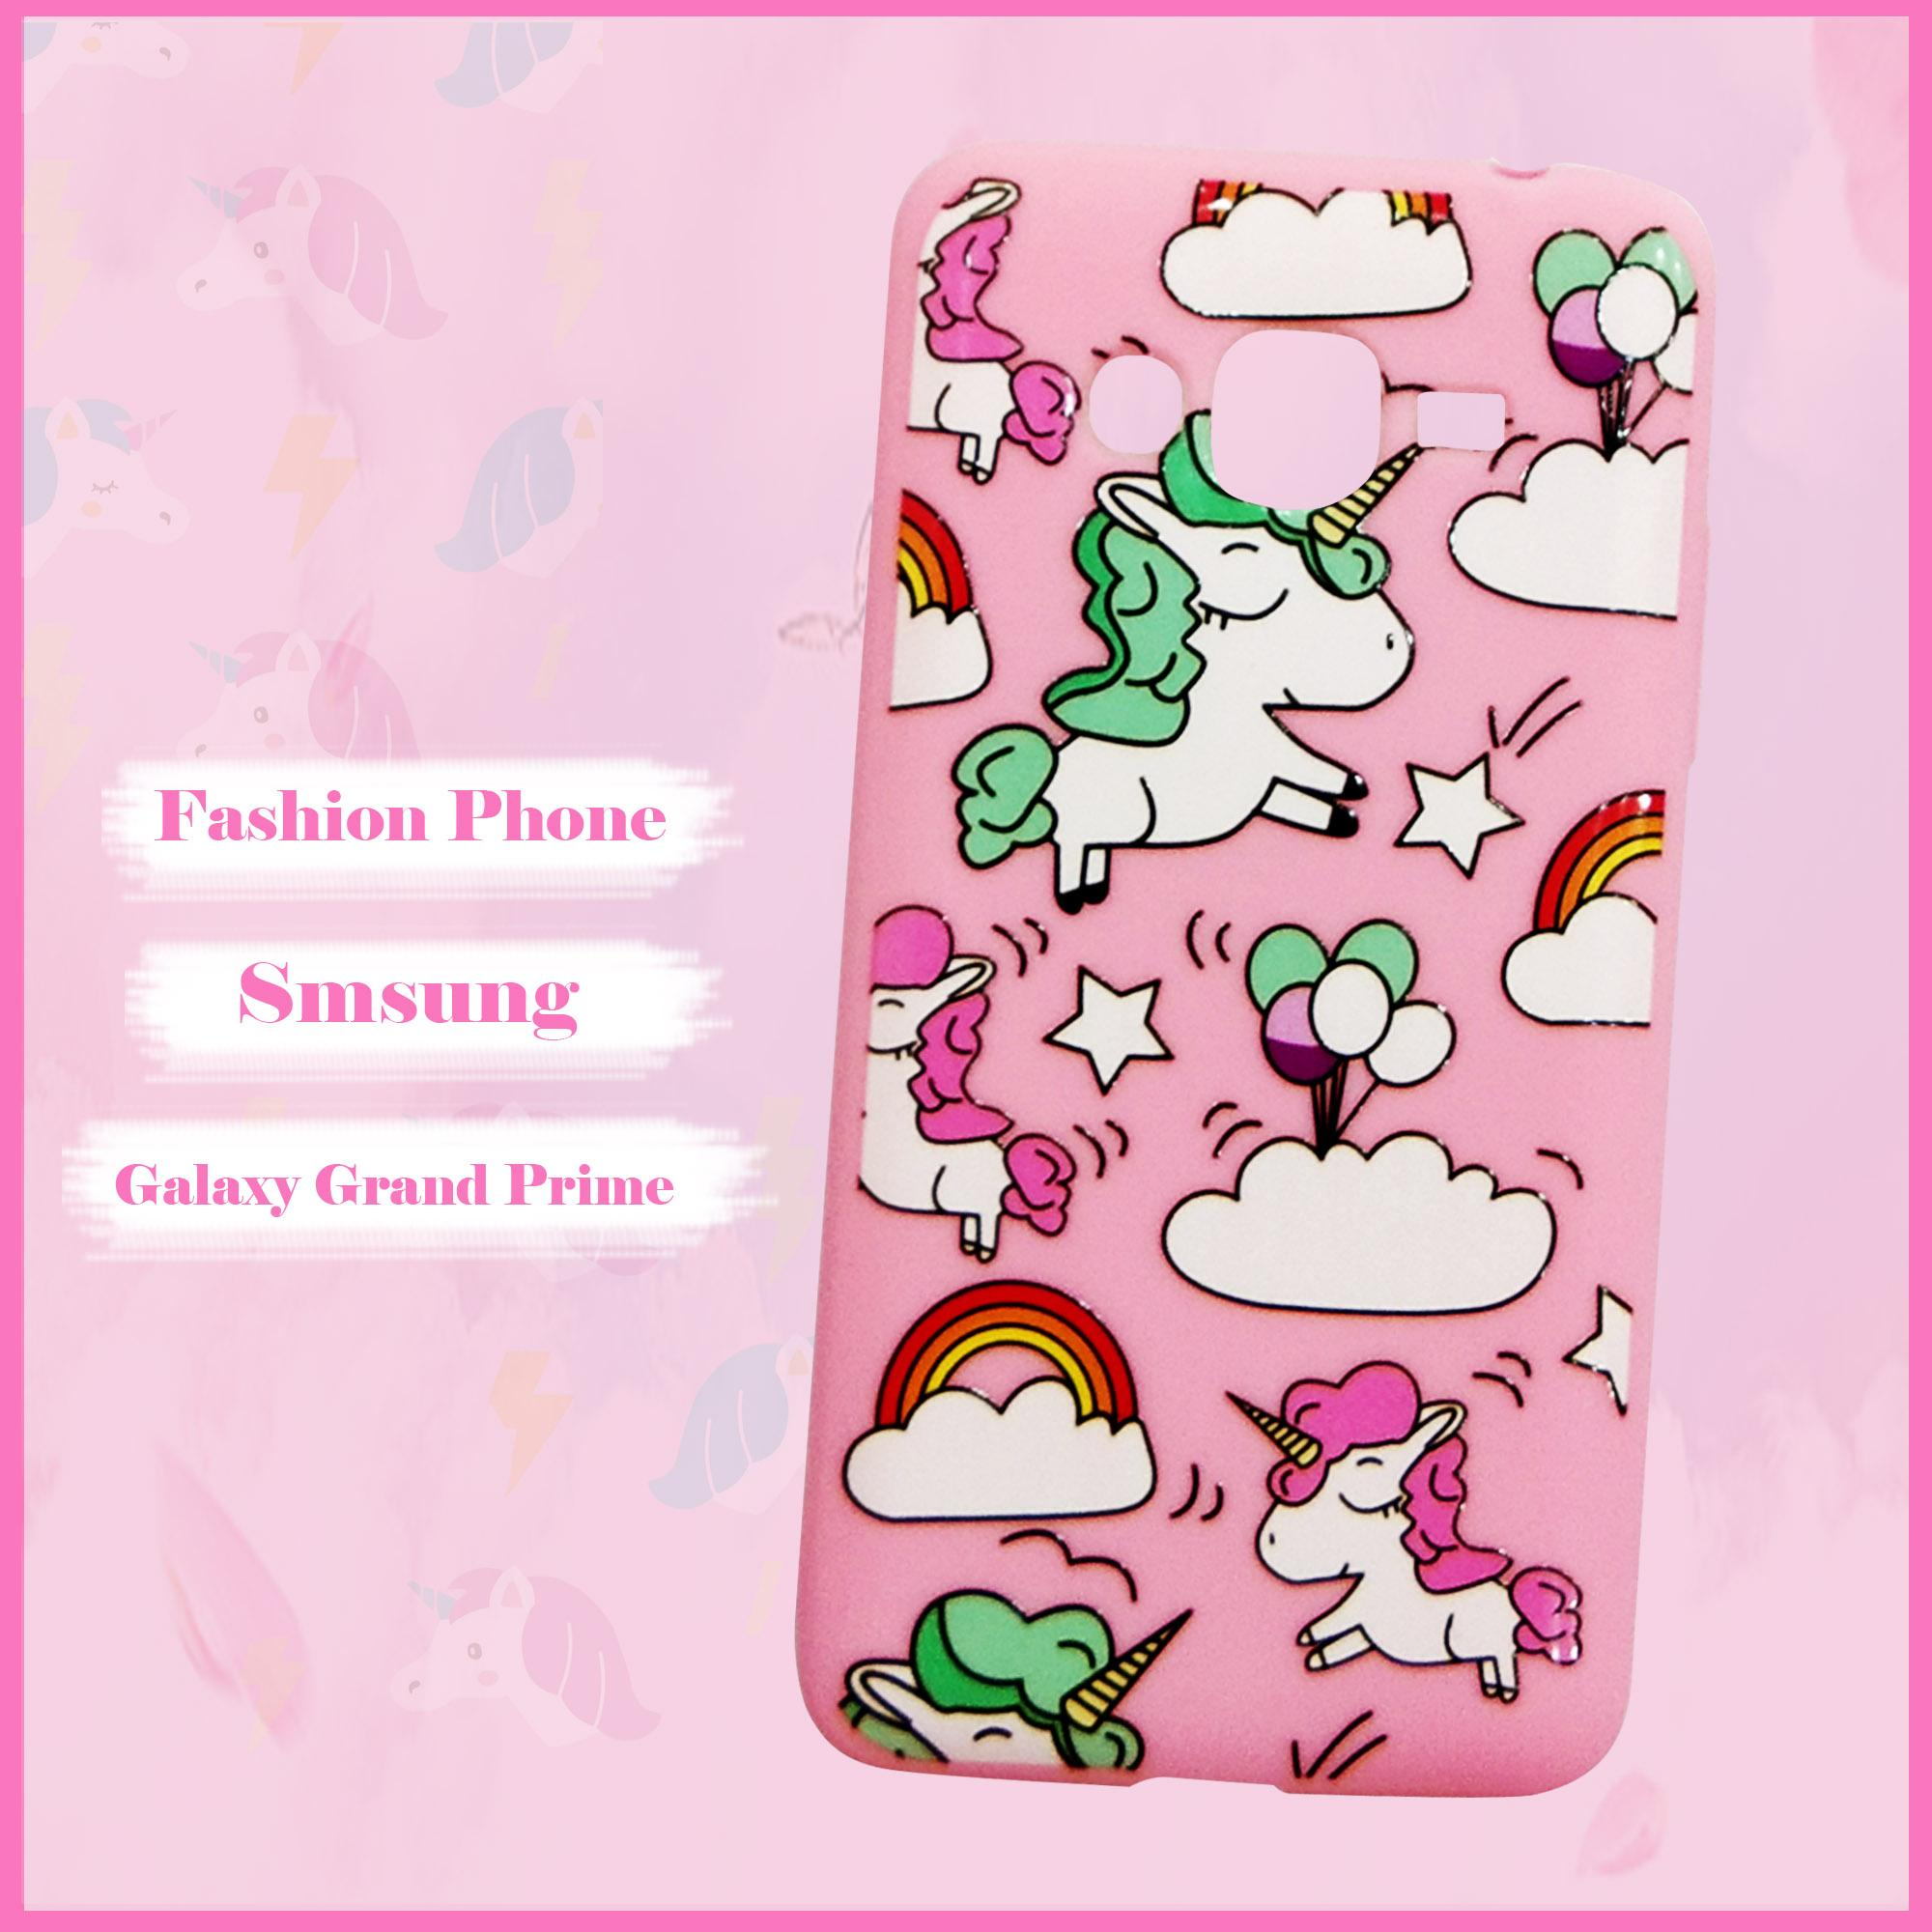 Softcase Cute Fashion Phone Case New Samsung Galaxy Grand Prime